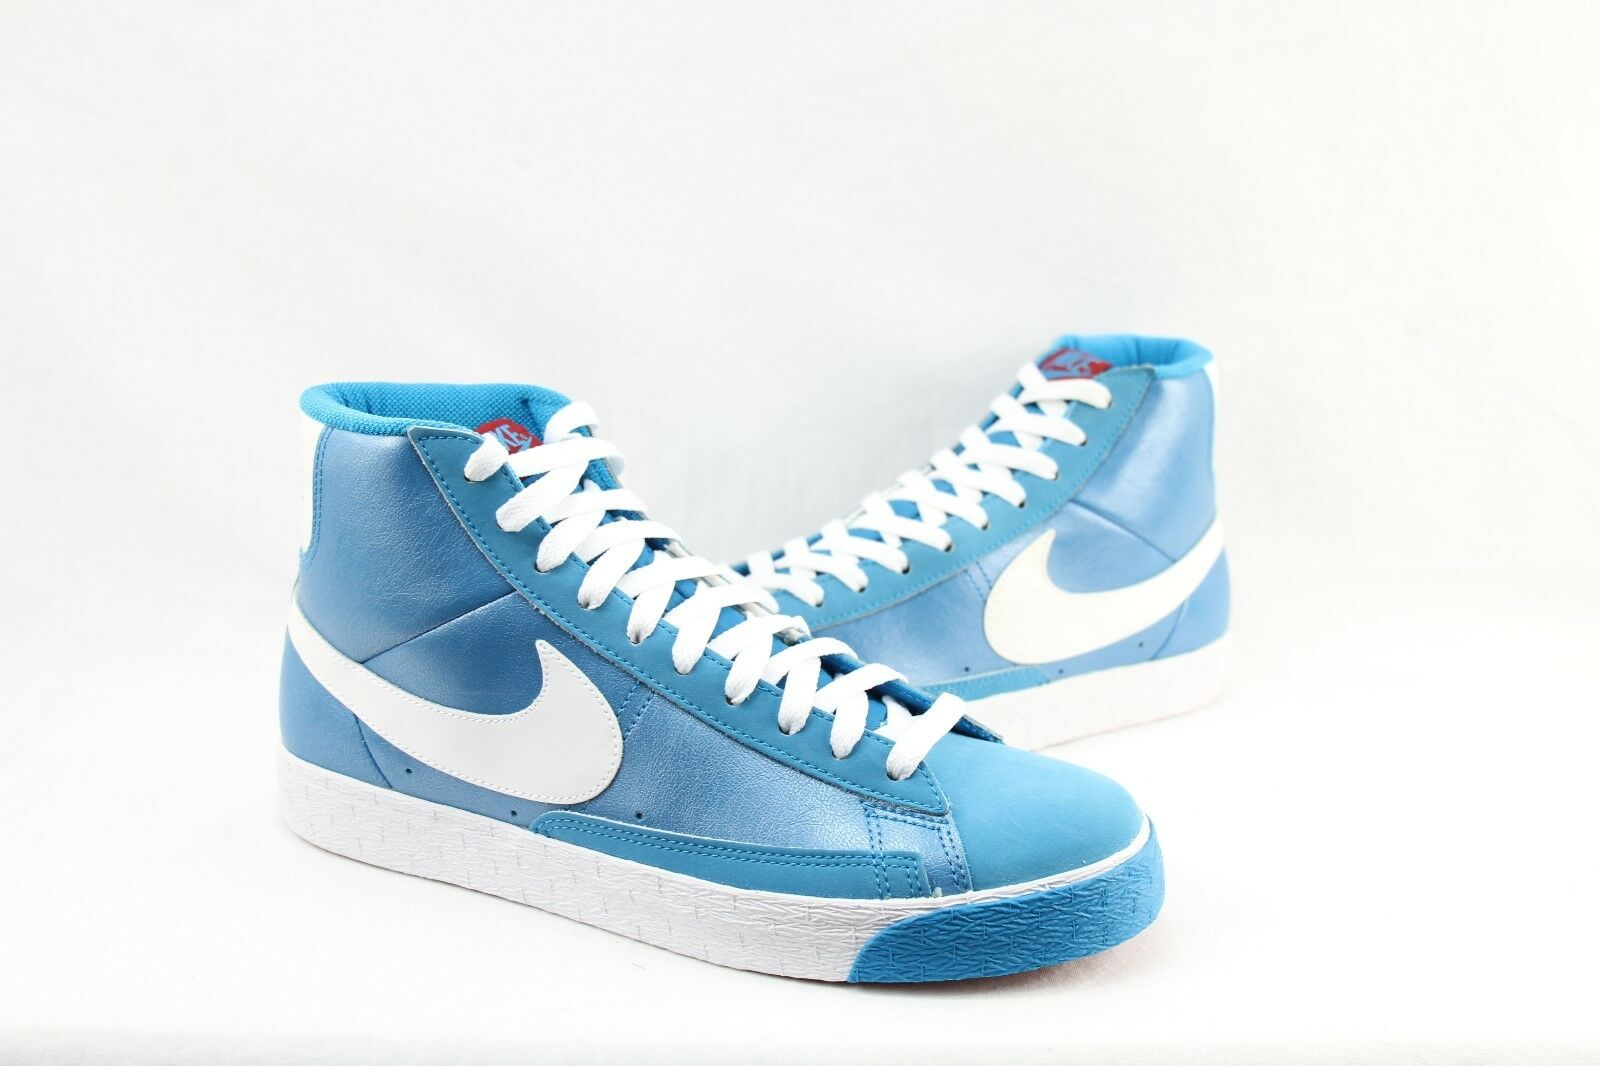 Nike Men's Blazer SP Fashion Sneakers   Casual   Athletic 379416 401 Size  11